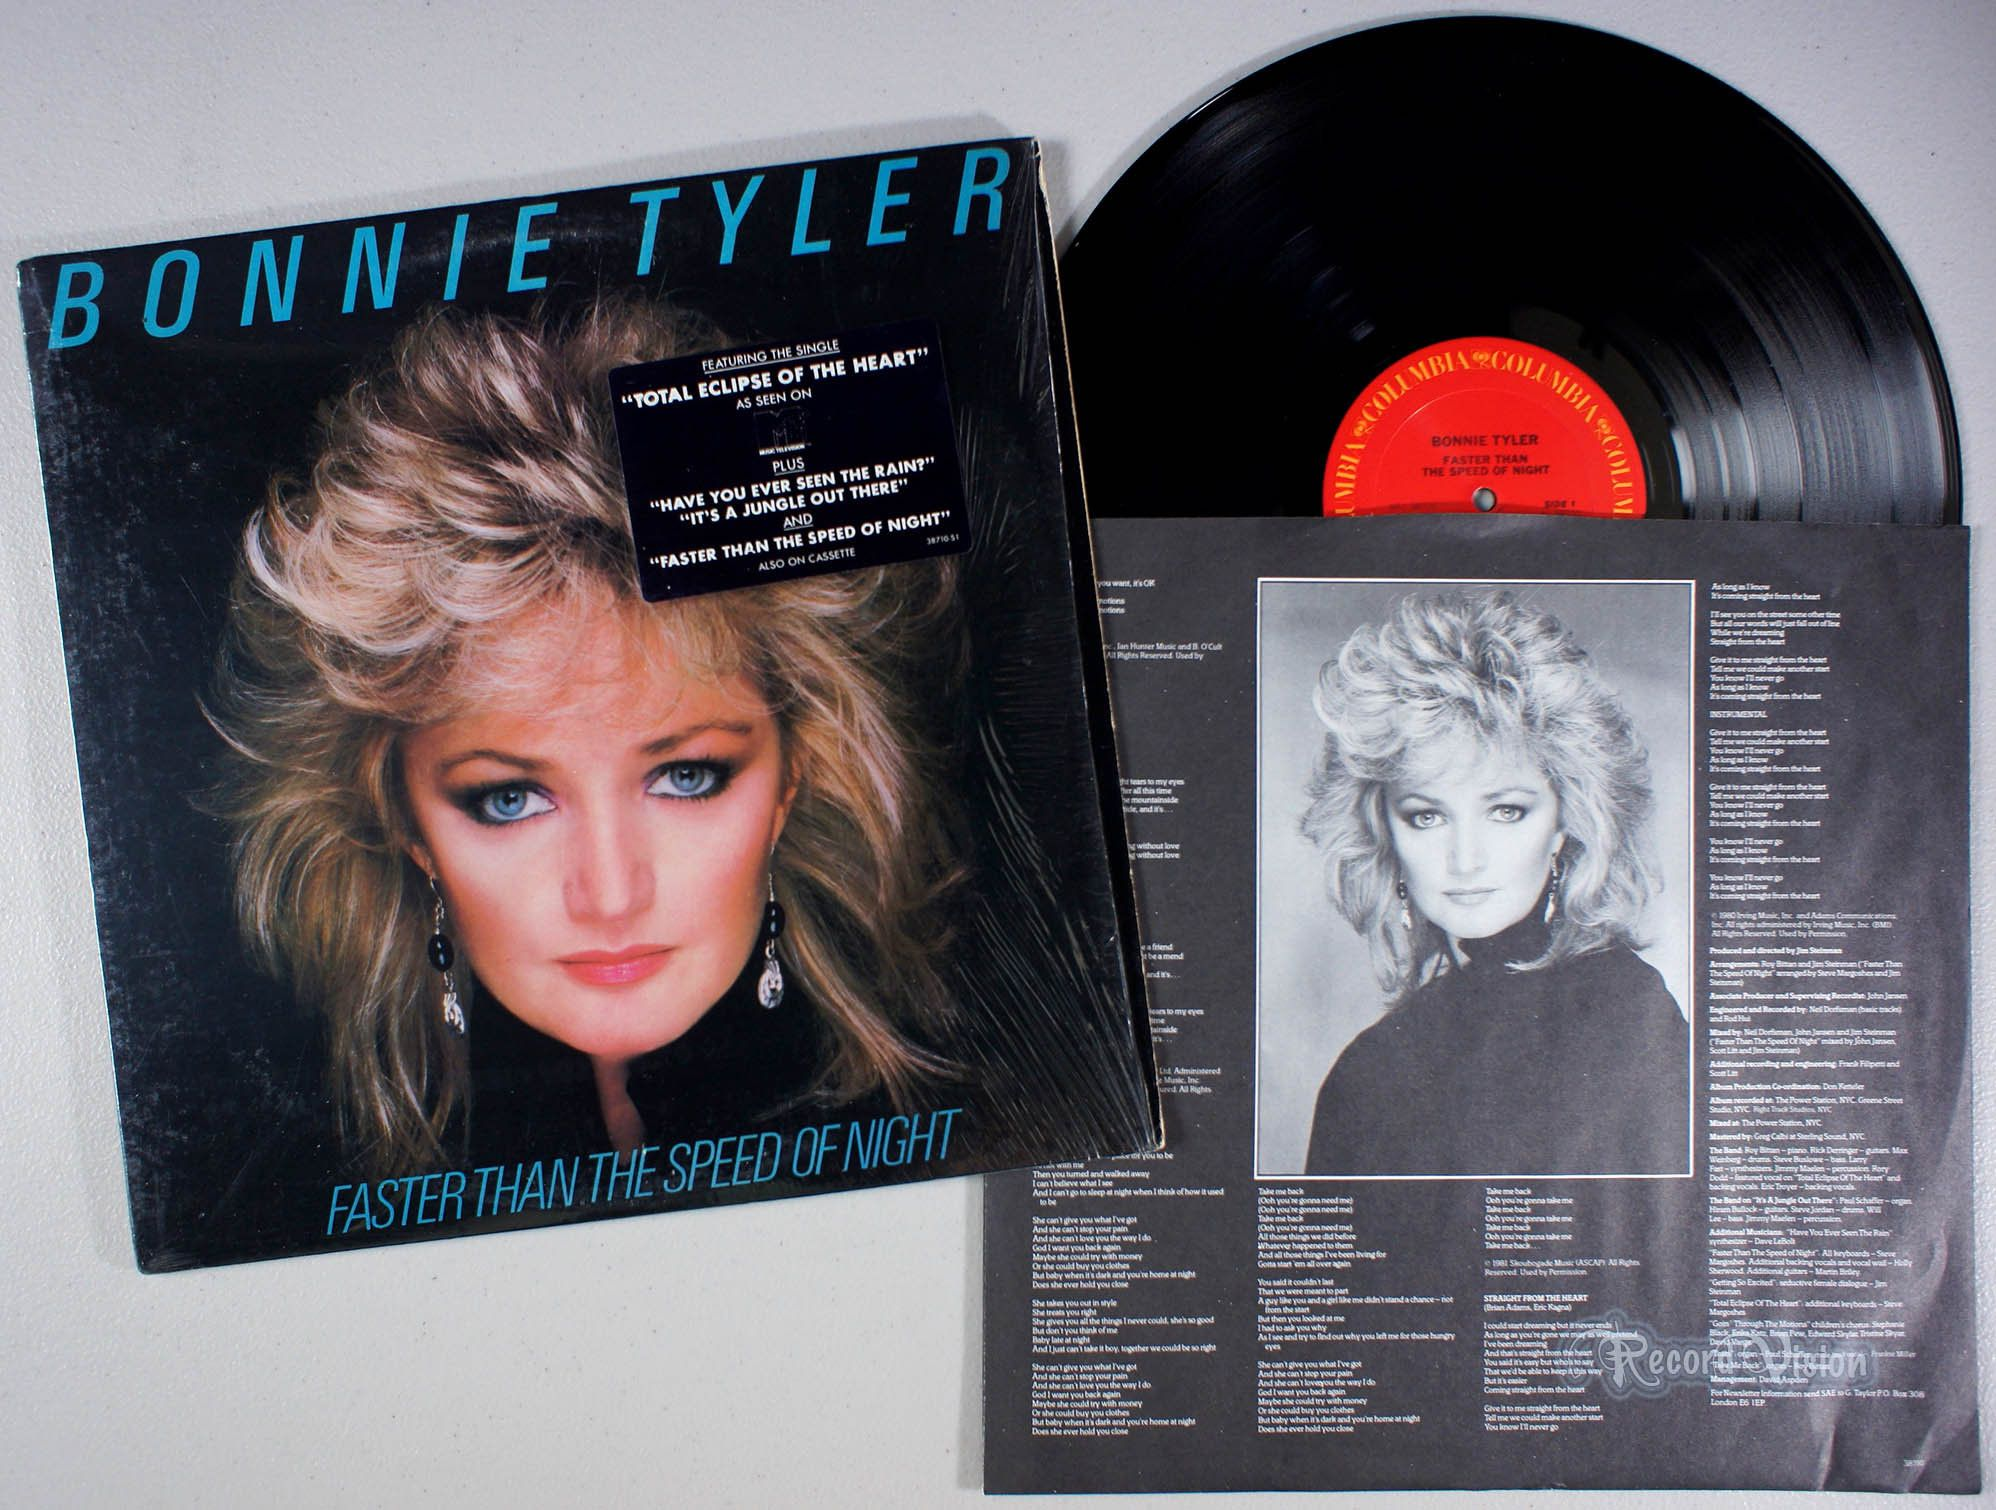 Faster Than The Speed Of Night Was Bonnie Tyler S Most Successful Album It Includes Her Grammy Nominated No 1 In 2020 Vinyl Record Album Bonnie Tyler Cover Songs